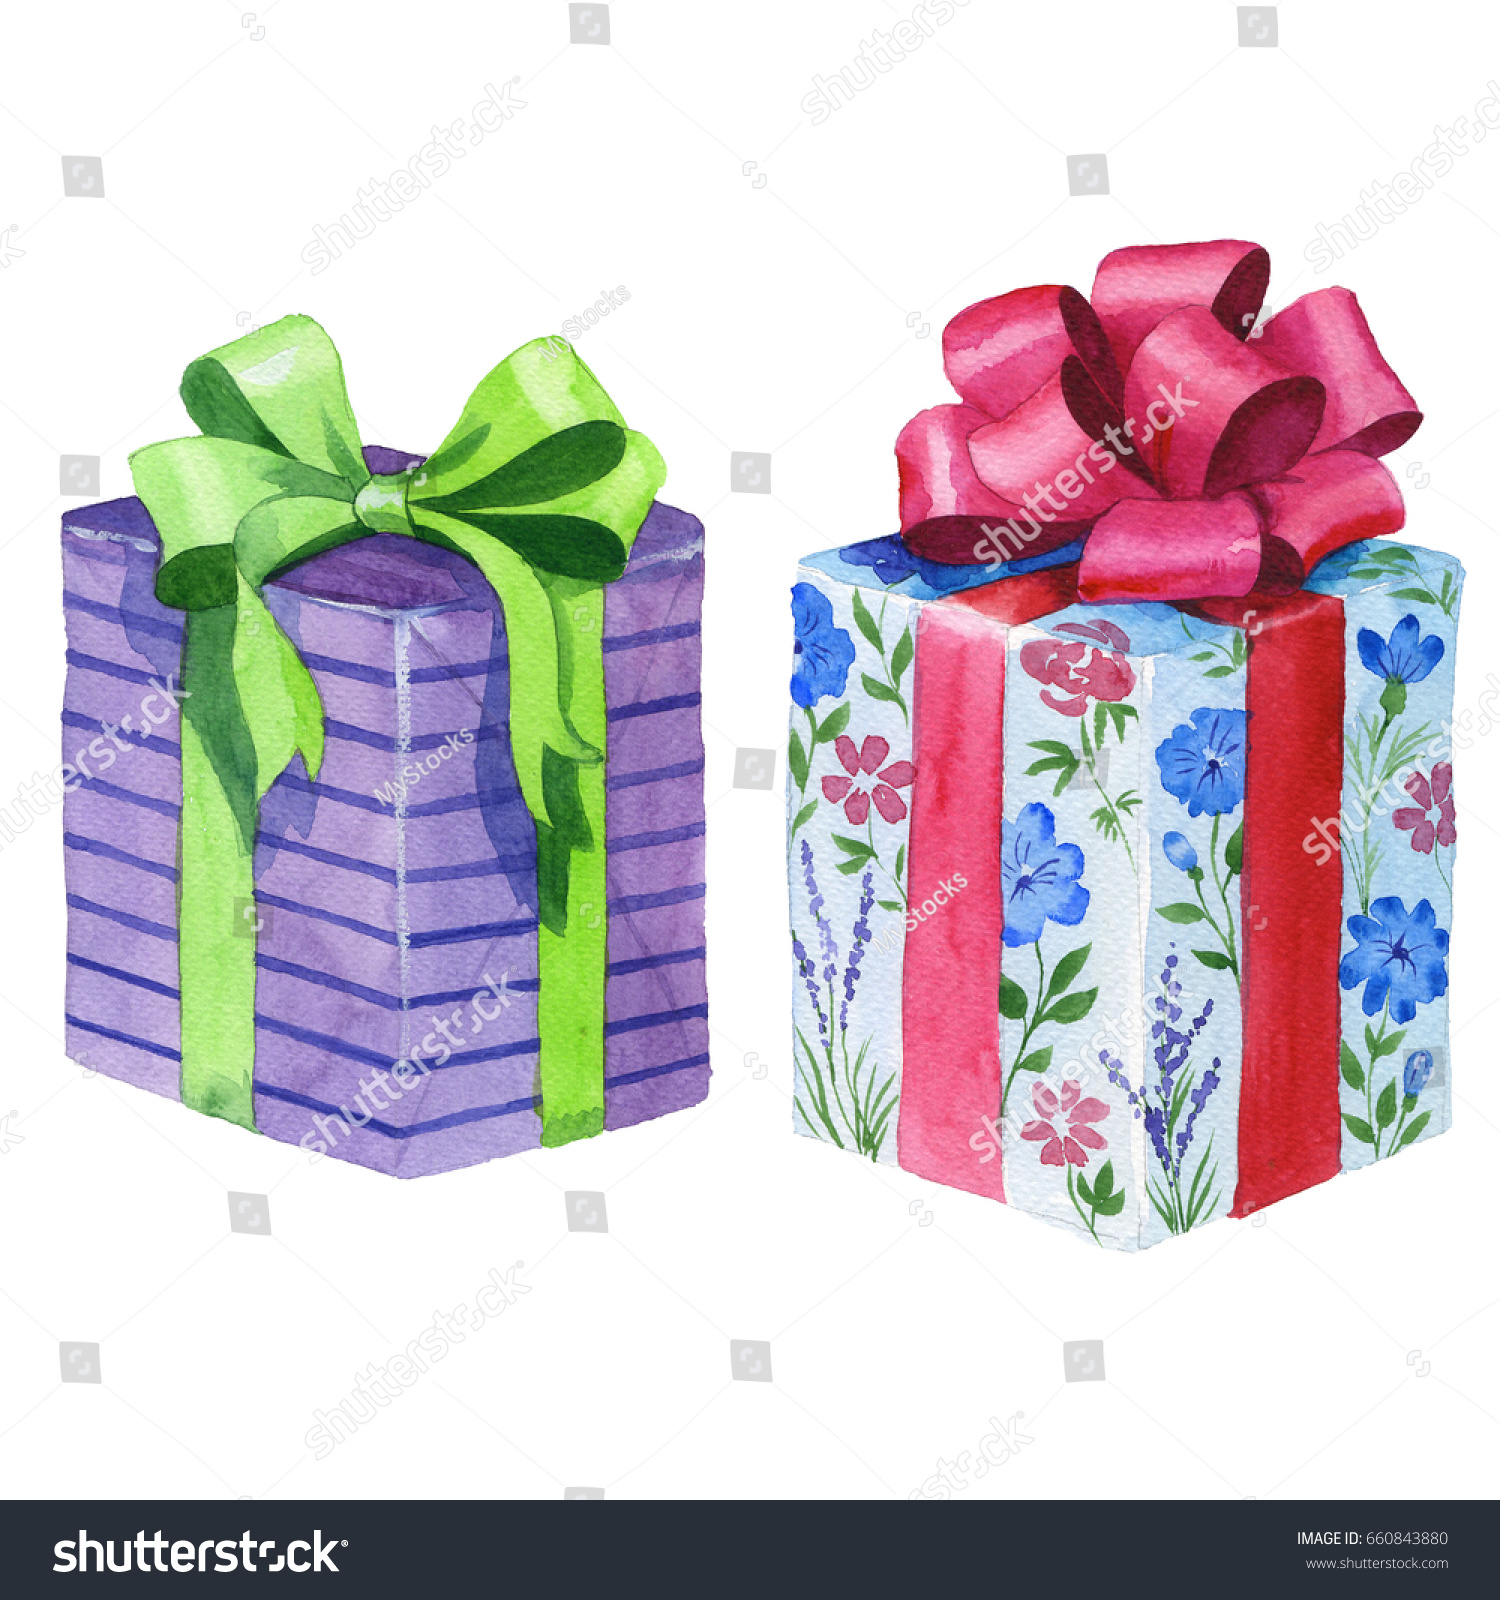 Watercolor birthday gift box illustration wrapped watercolor birthday gift box illustration wrapped 660843880 shutterstock negle Images